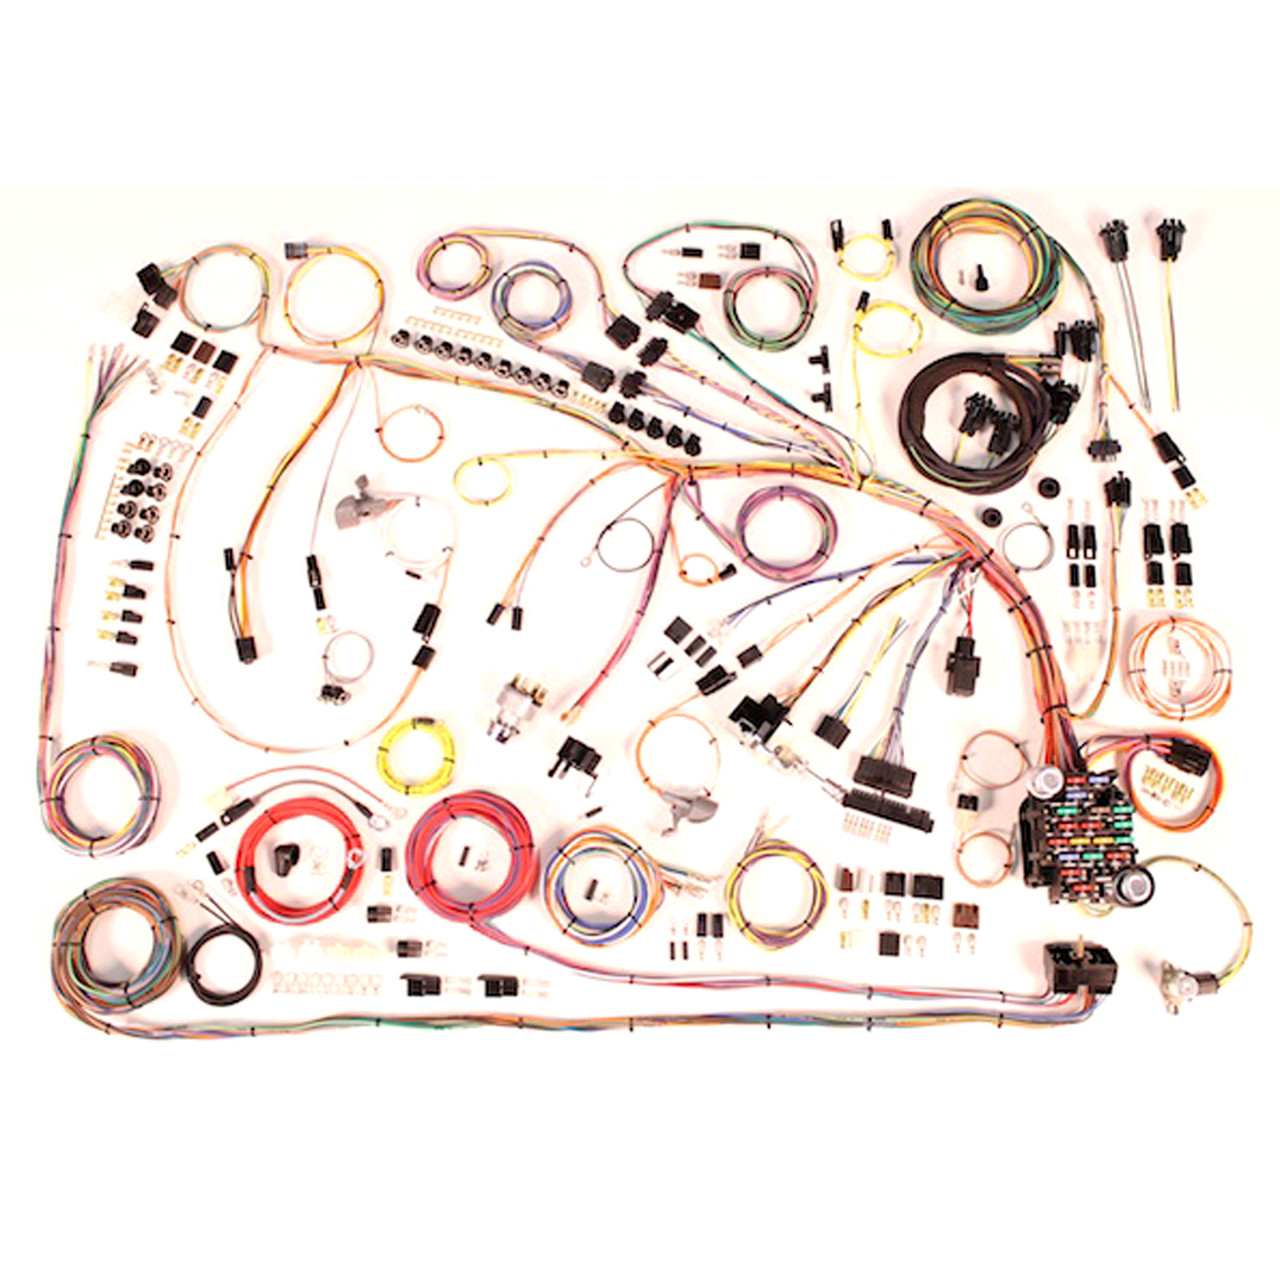 hight resolution of american autowire 1965 chevrolet impala classic update complete wiring harness for 1965 chevy impala